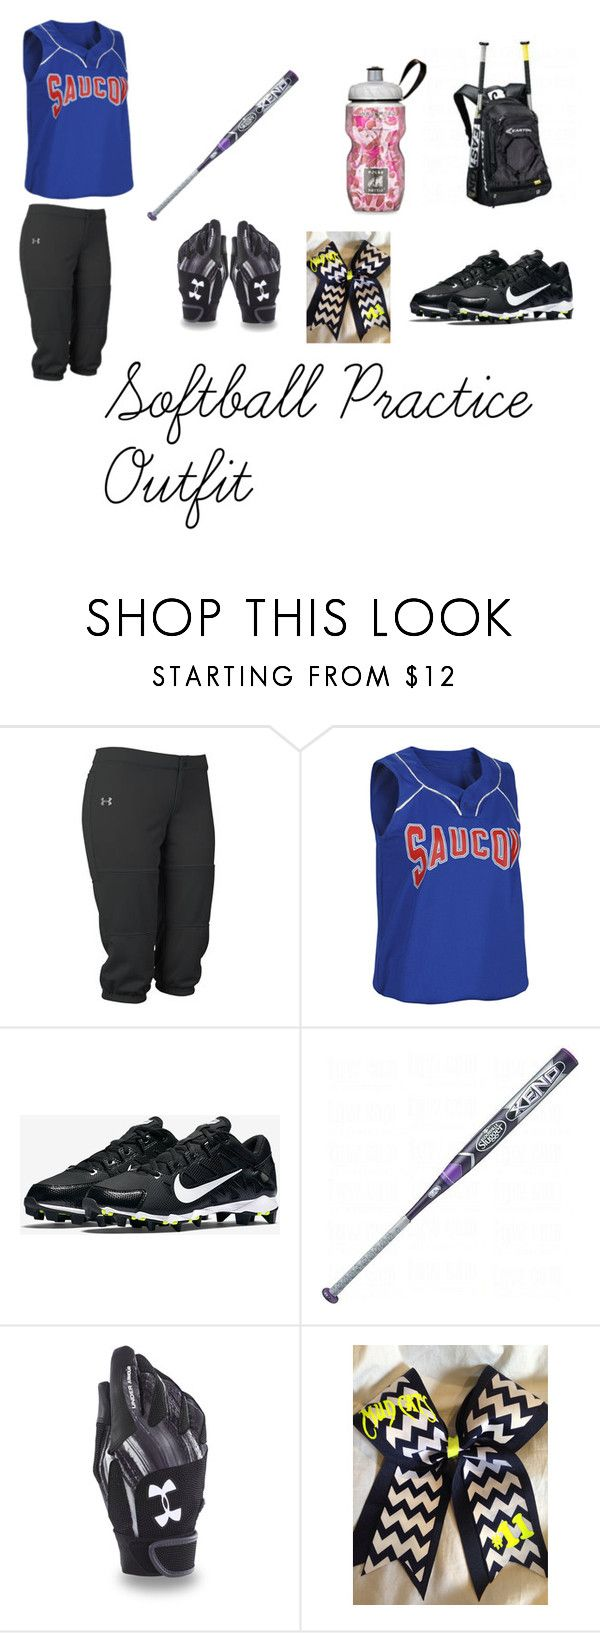 """""""Softball Practice Outfit"""" by softballlover2004 on Polyvore featuring Under Armour, NIKE, Louisville Slugger, women's clothing, women's fashion, women, female, woman, misses and juniors"""